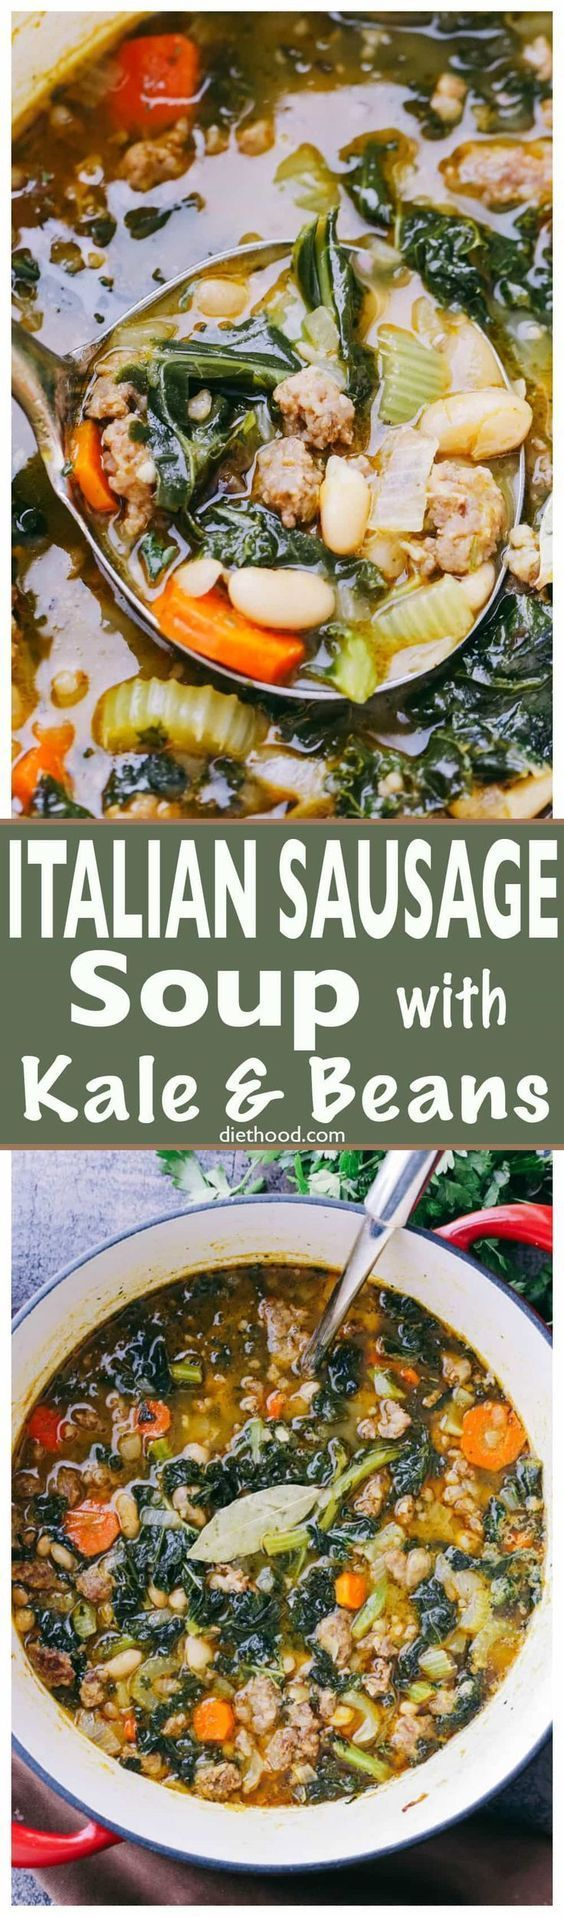 Italian Sausage Soup with Kale and Beans - Hearty and incredibly delicious soup prepared with Italian Sausage, onions, garlic, kale, and beans! #SuperSoups!